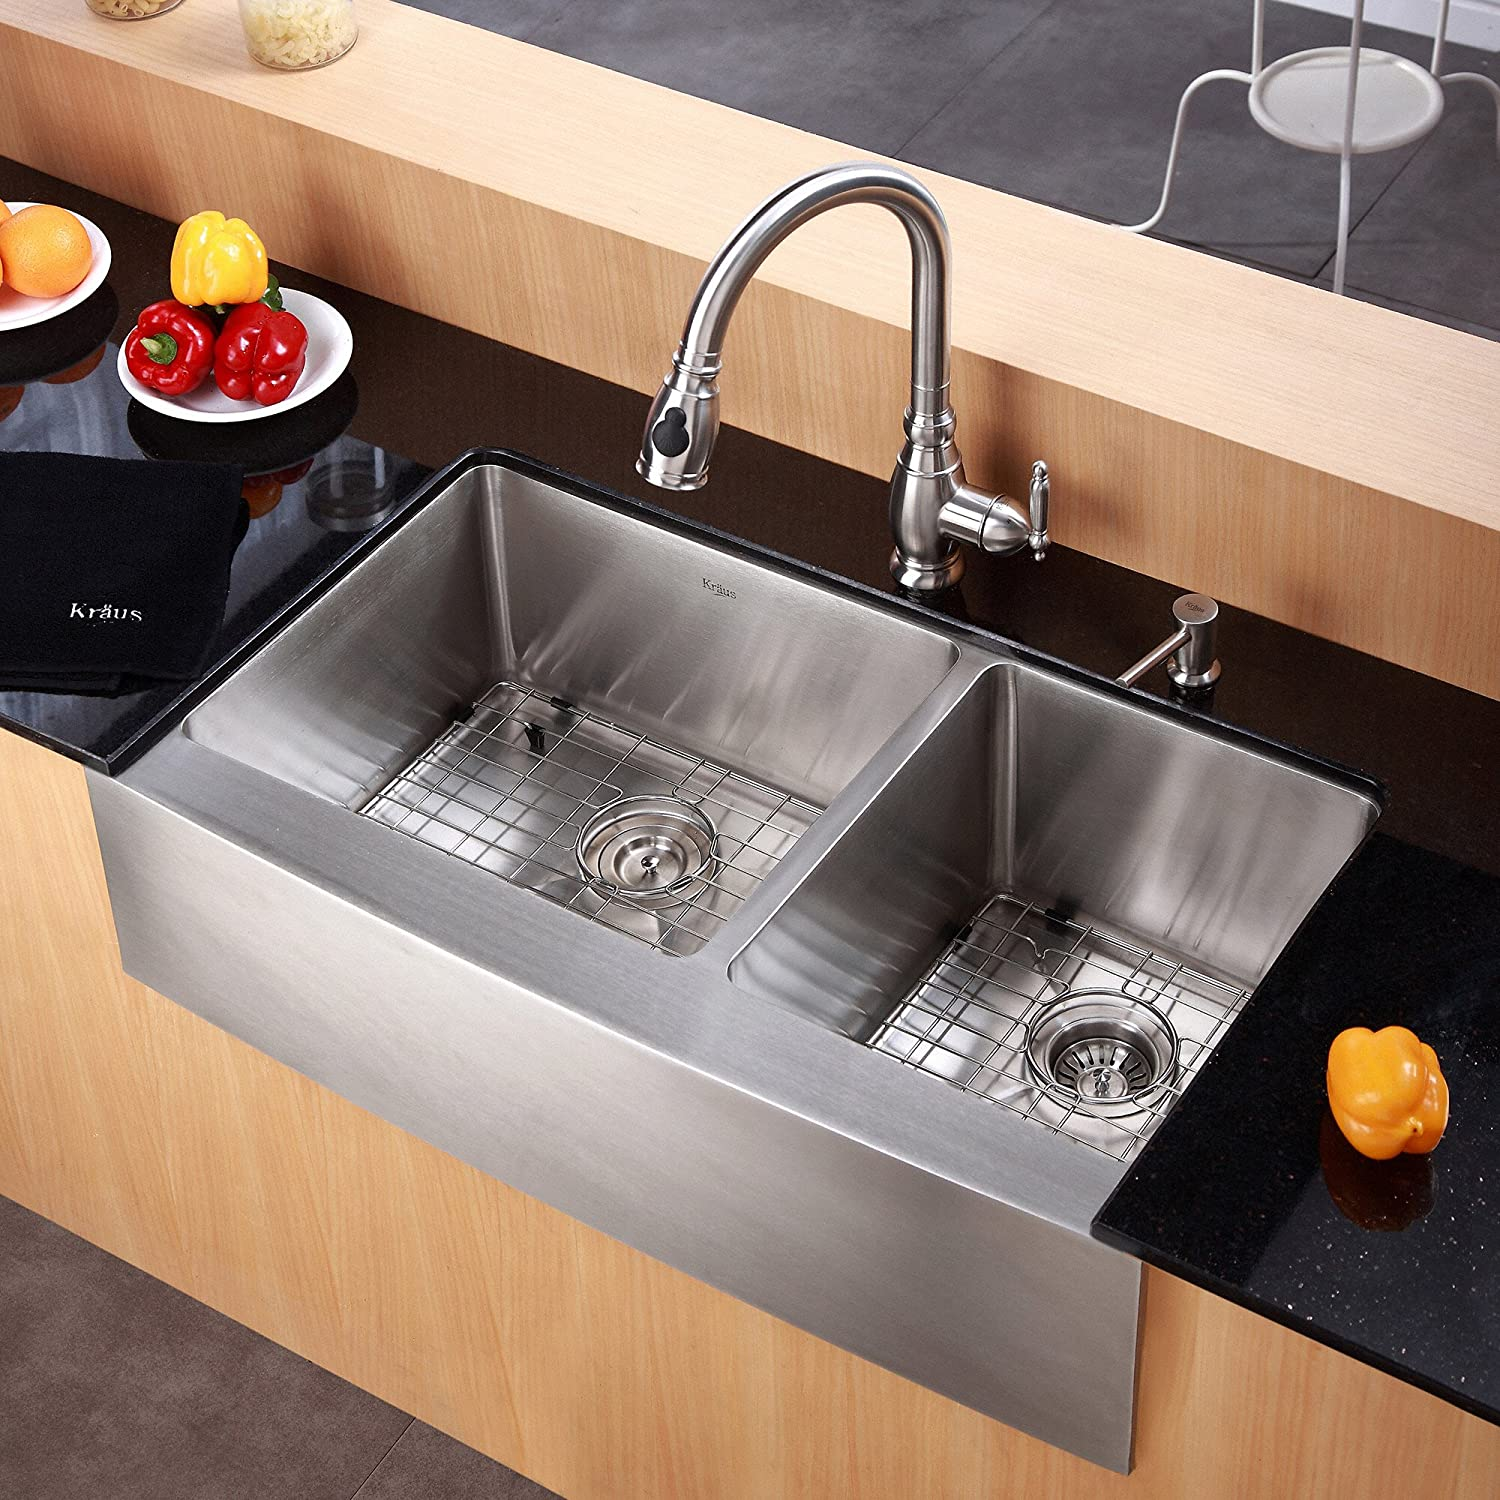 Kraus Khf203 36 36 Inch Farmhouse Apron 60 40 Double Bowl 16 Gauge Stainless Steel Kitchen Sink Amazon Com